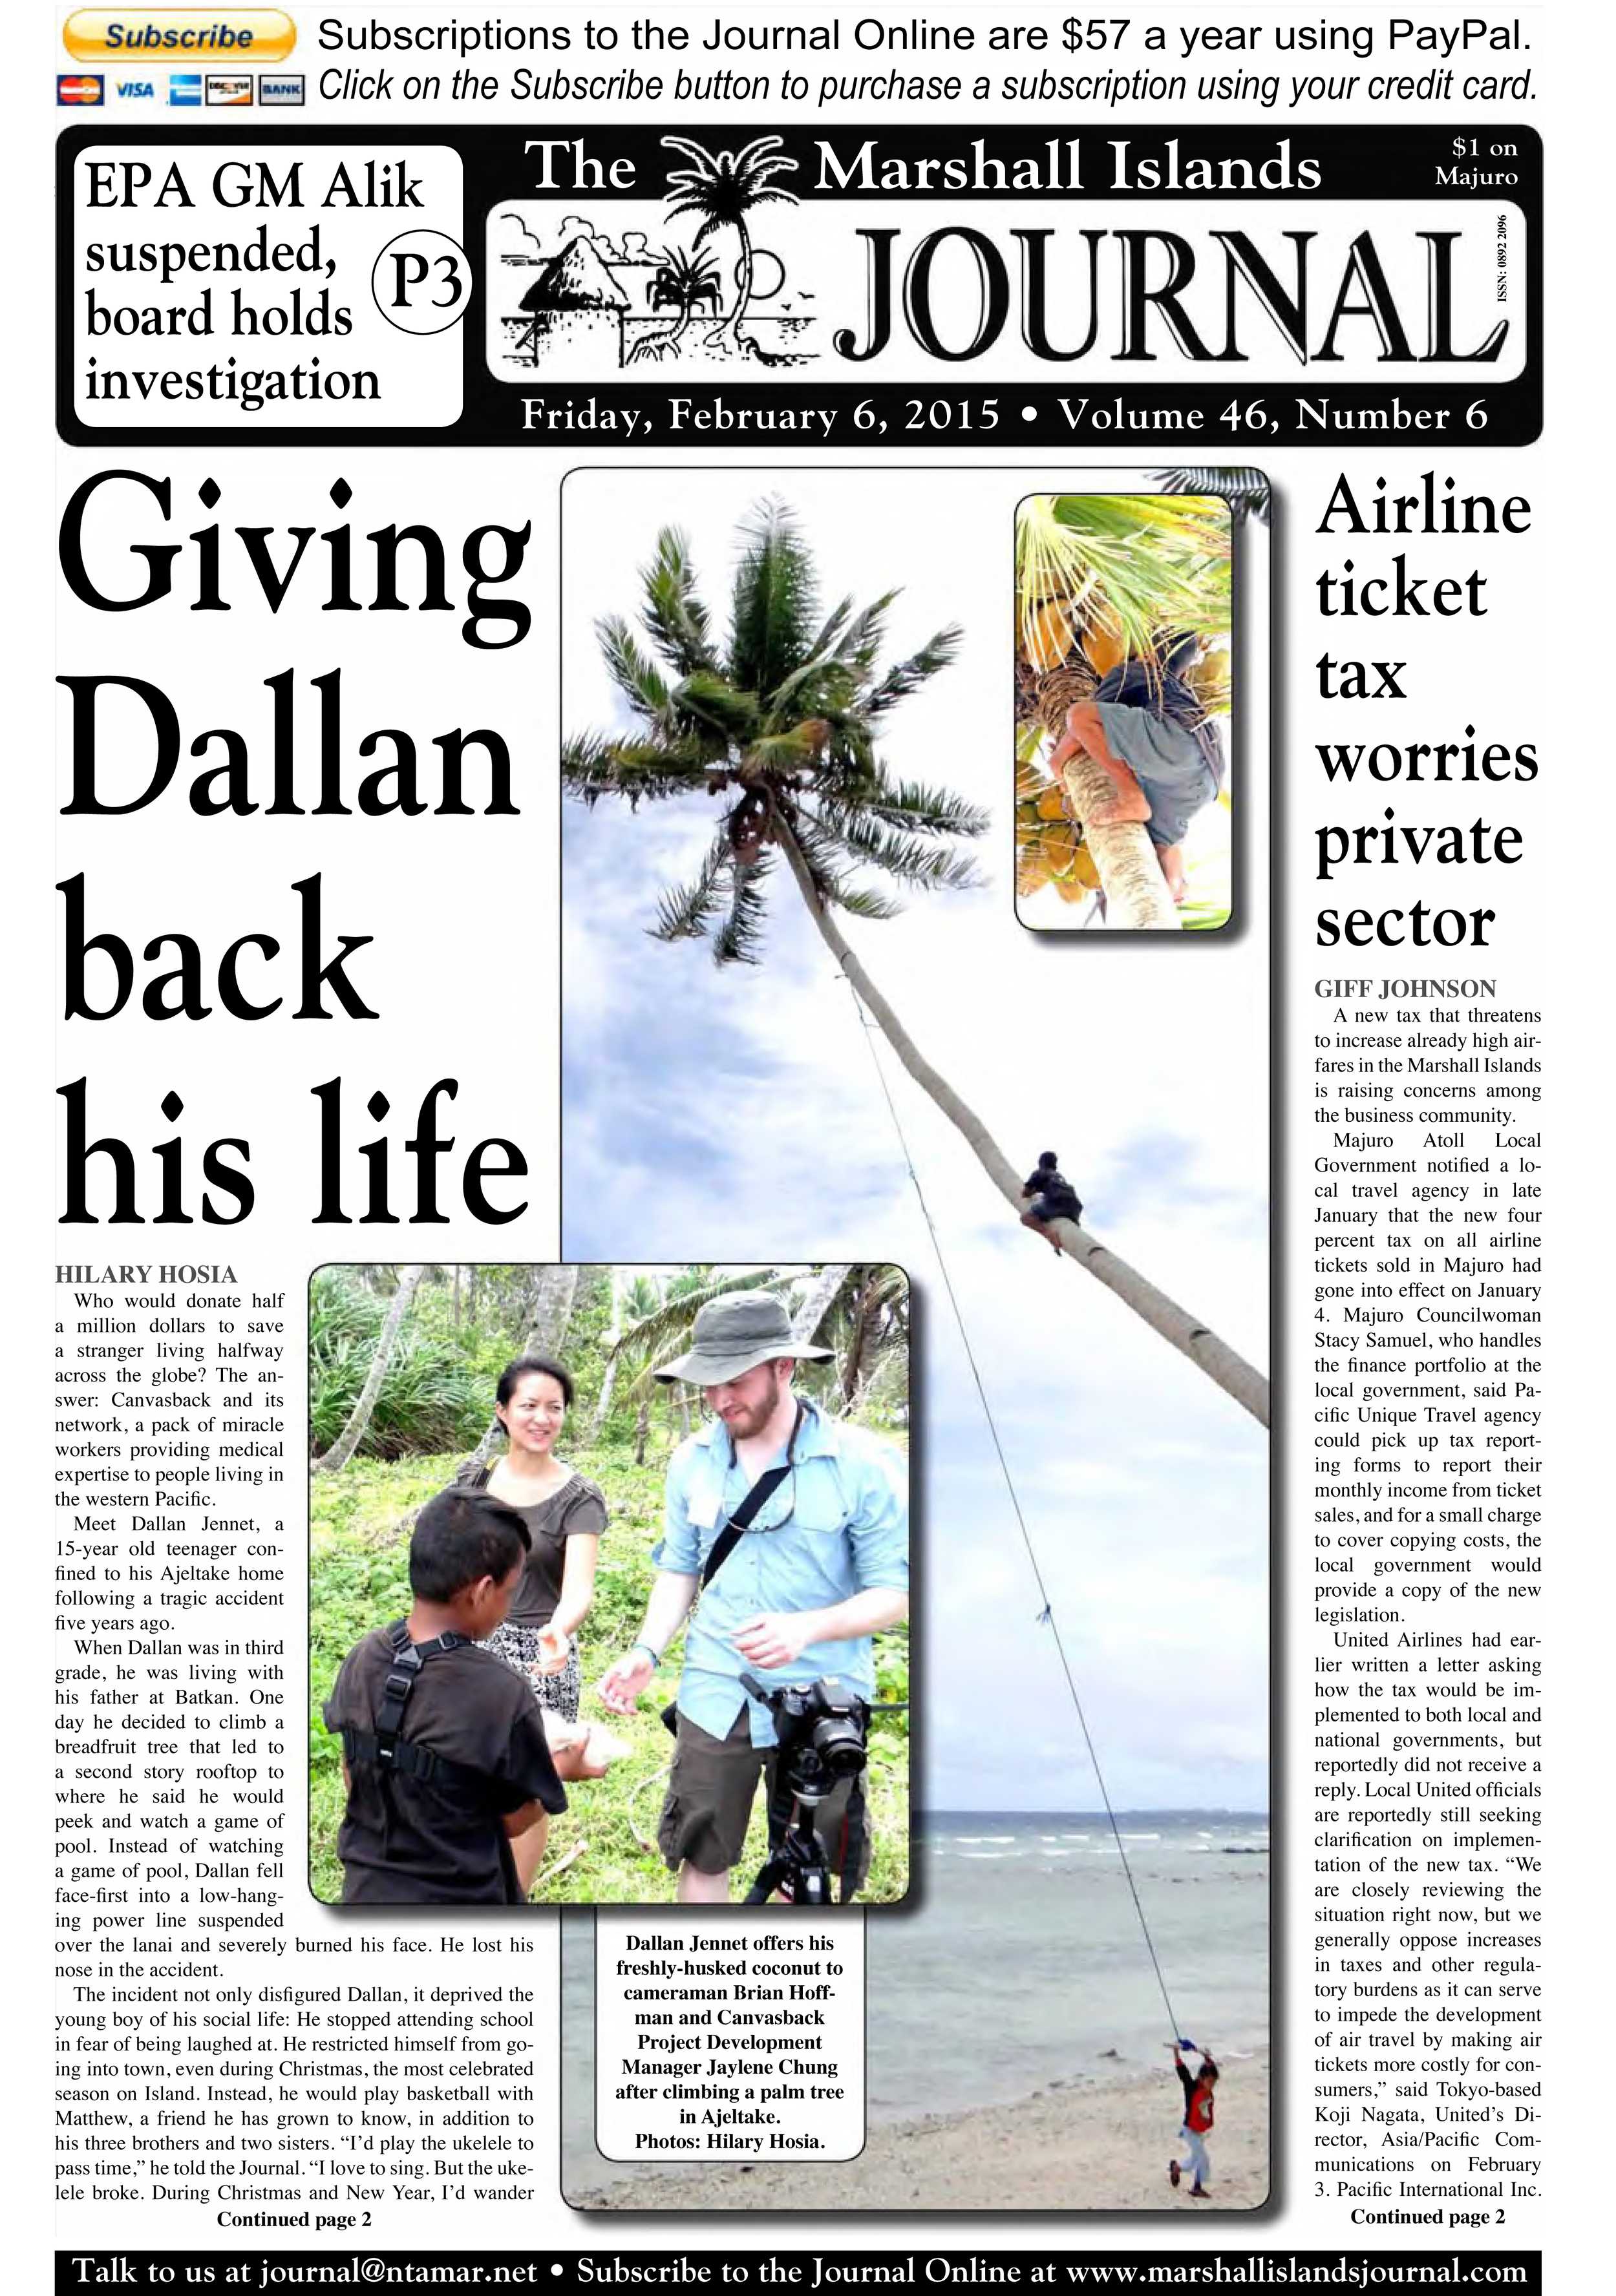 Download and read an article from the Marshall islands journal